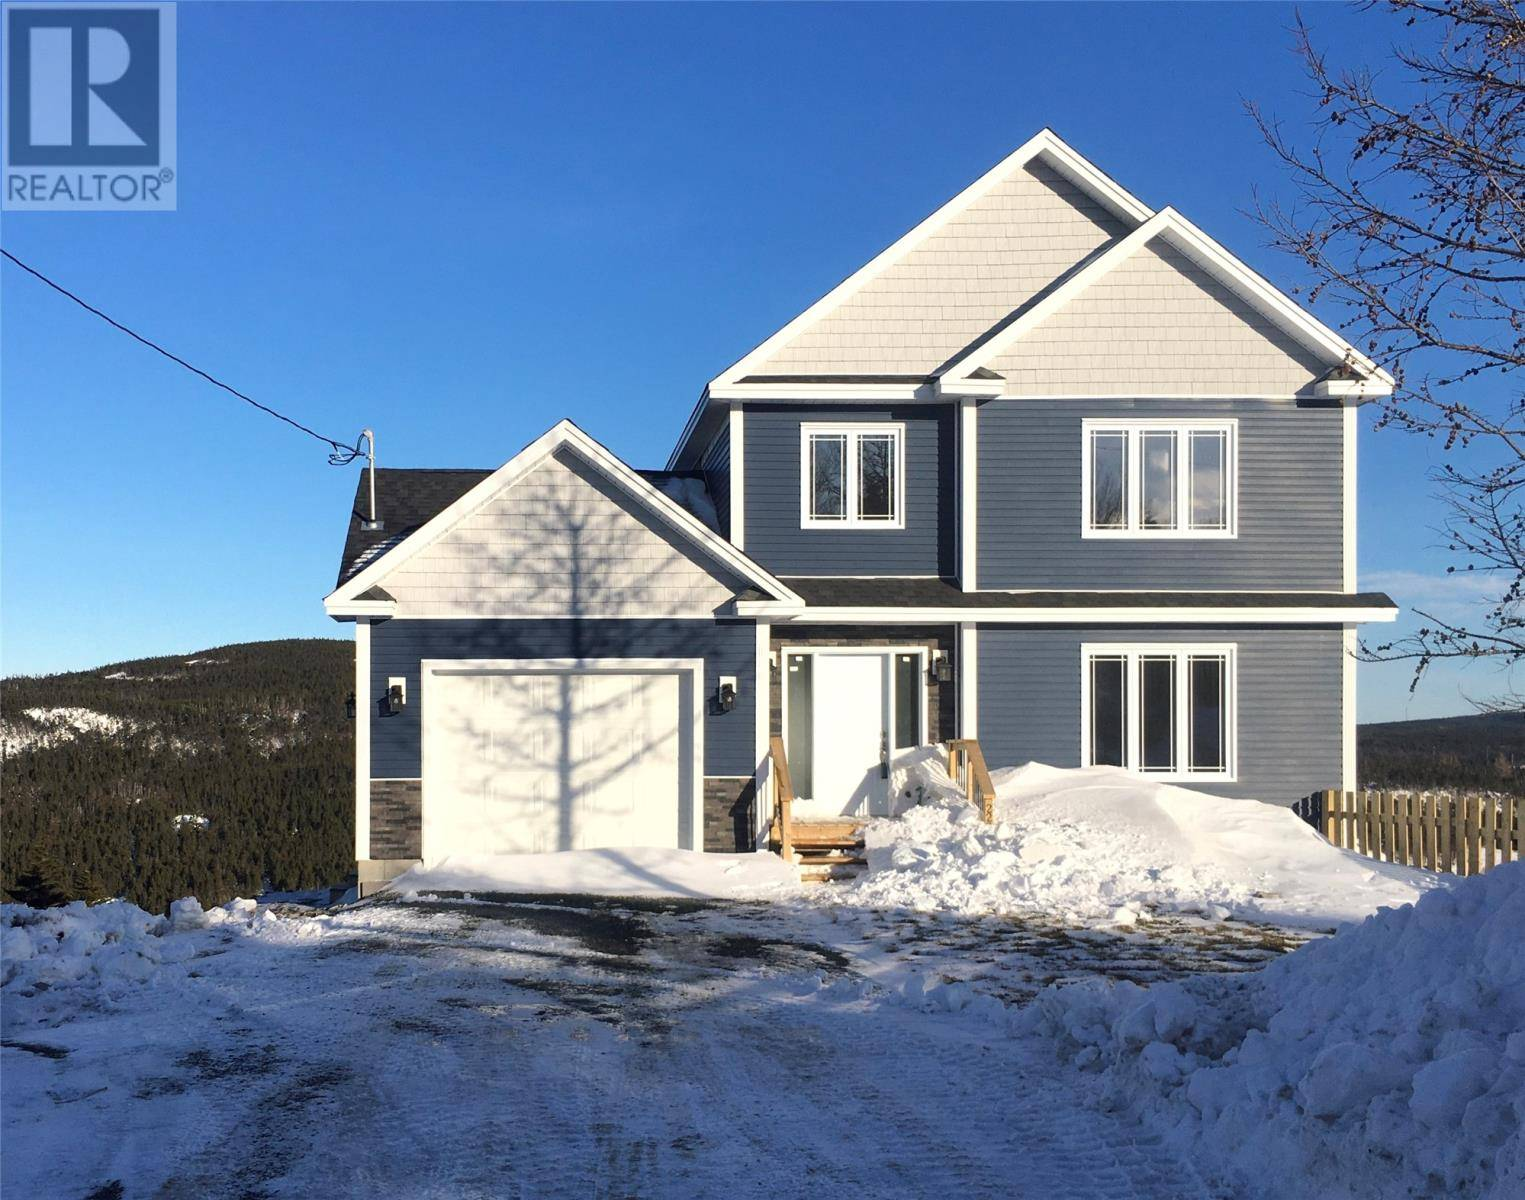 House for sale at 229 Dogberry Hill Rd Portugal Cove - St. Philips Newfoundland - MLS: 1203115